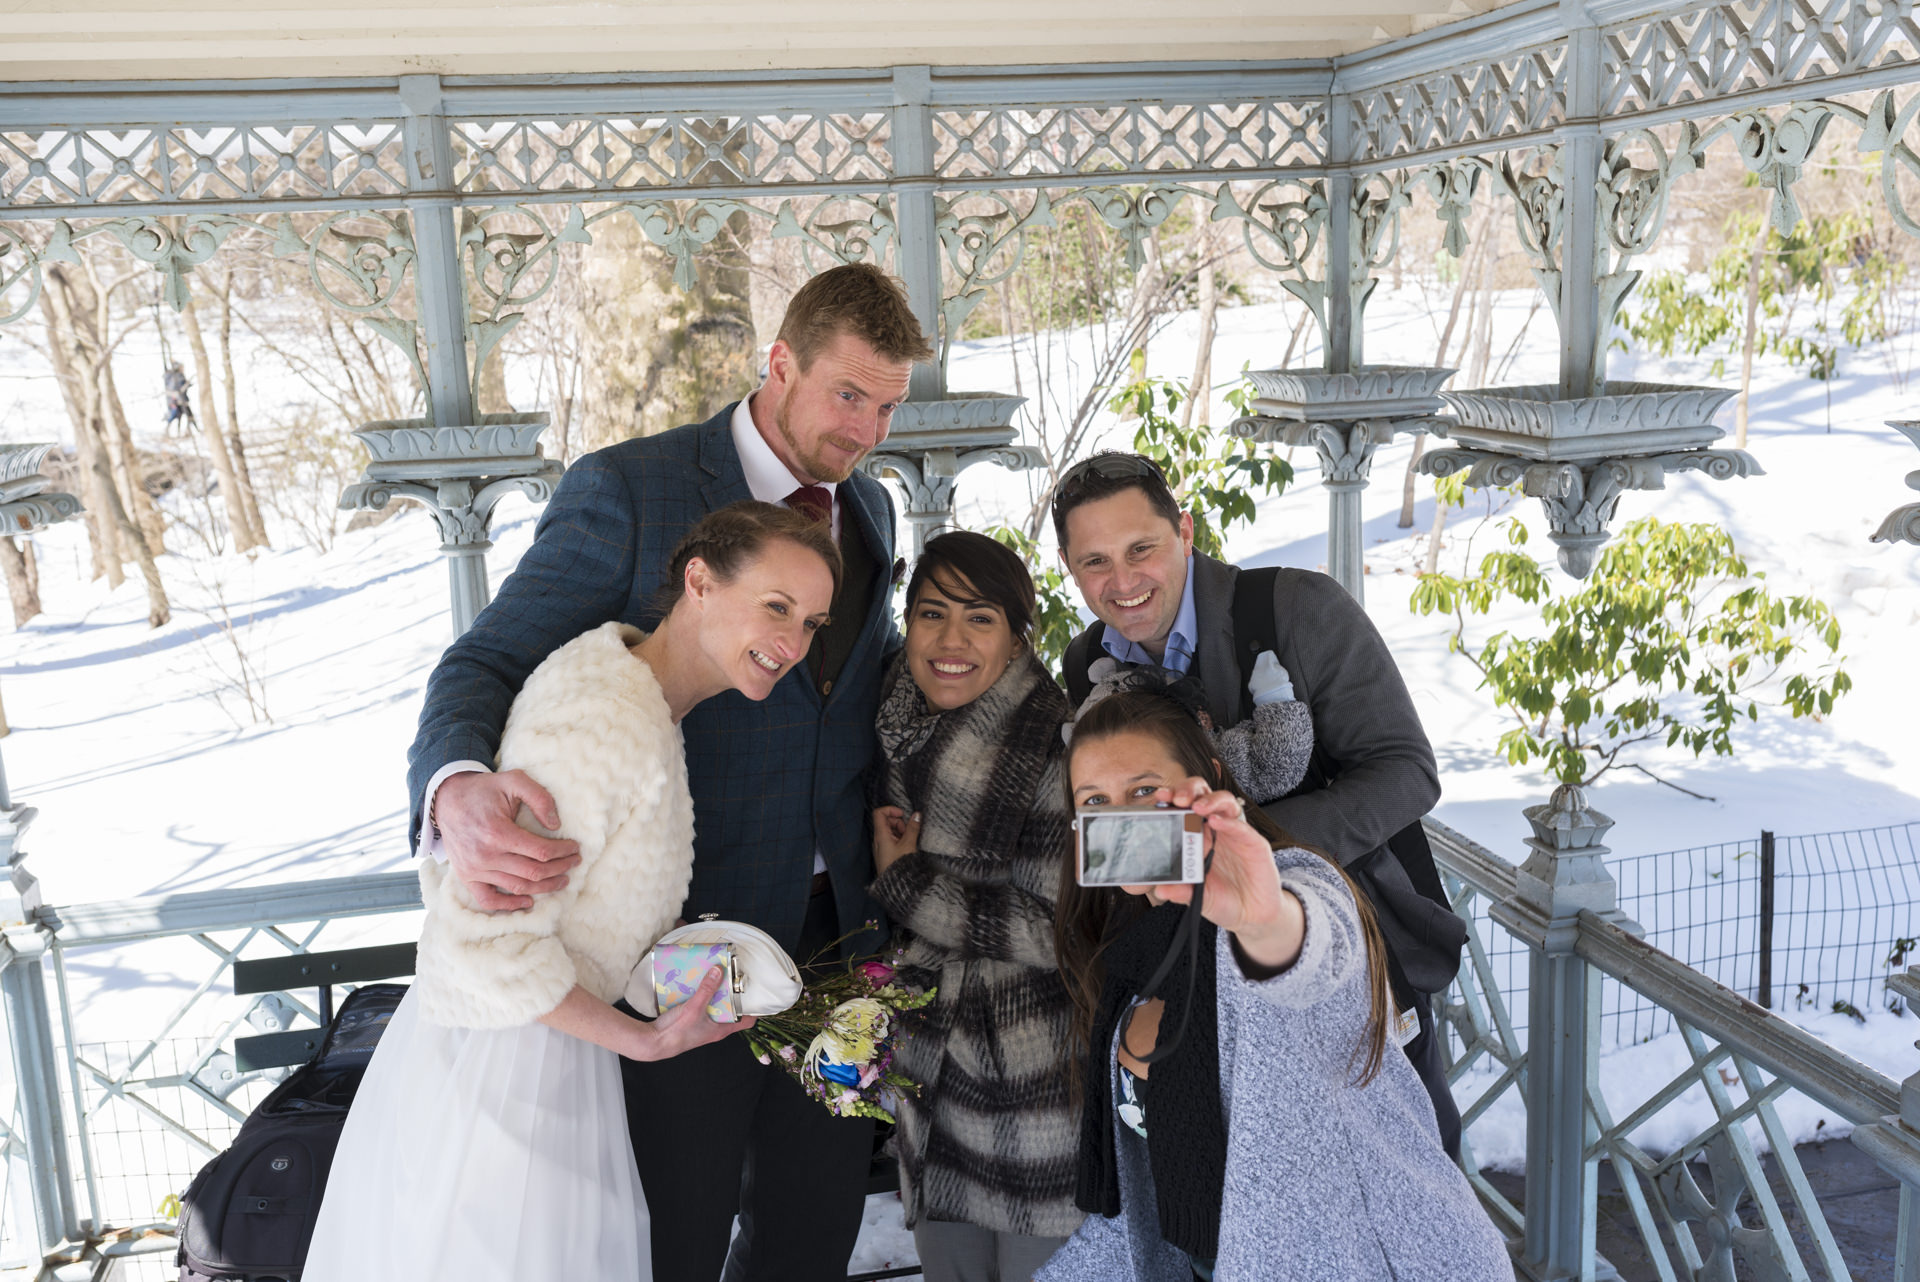 Kerry and Luke elope in Central Park